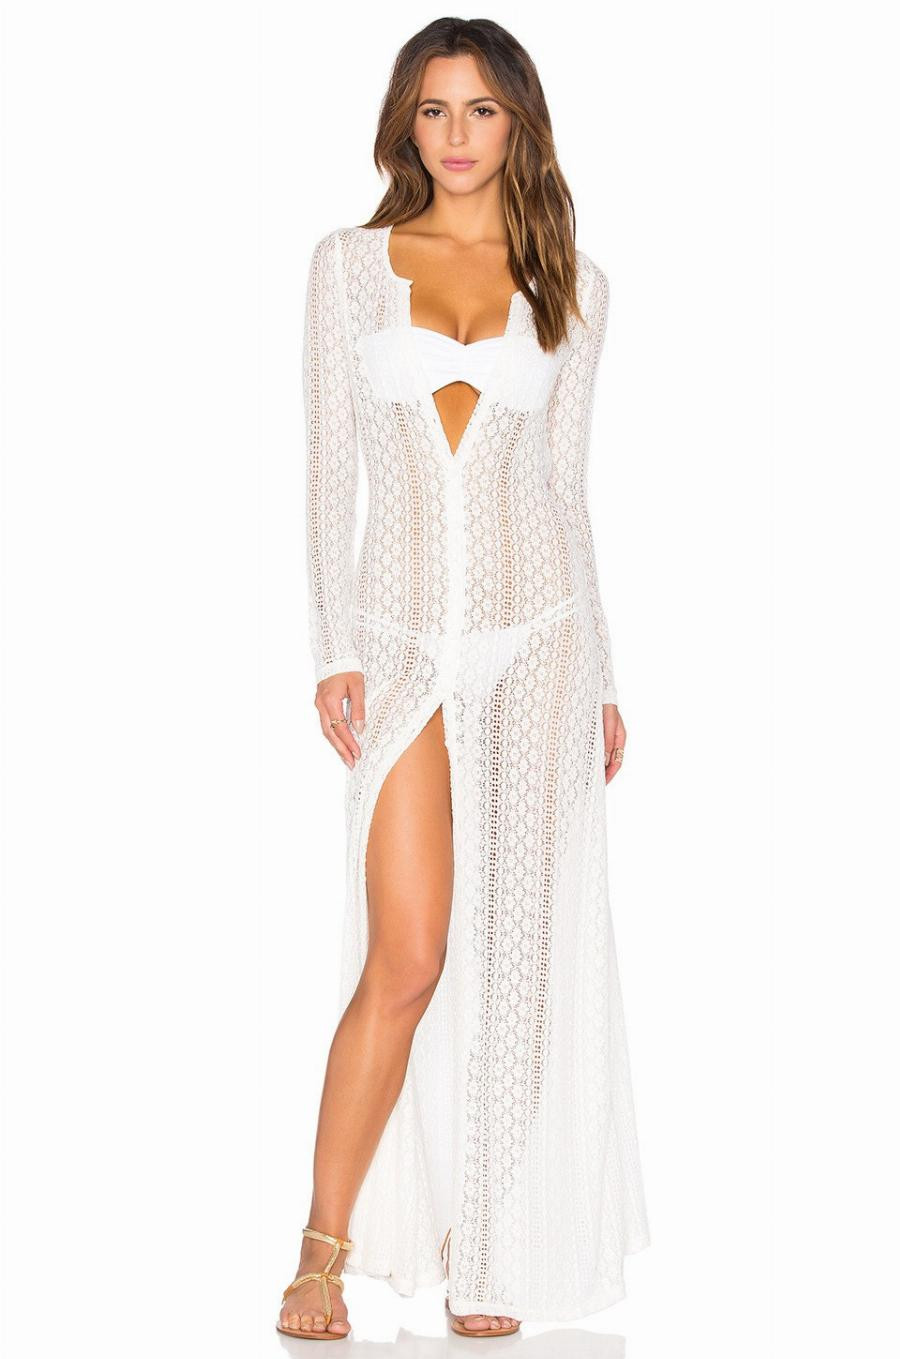 Lovely Summer Style Women Hollow Out Bathing Suit Swimsuit Cover White Crochet Cover Ups Of Charming 44 Pics White Crochet Cover Ups